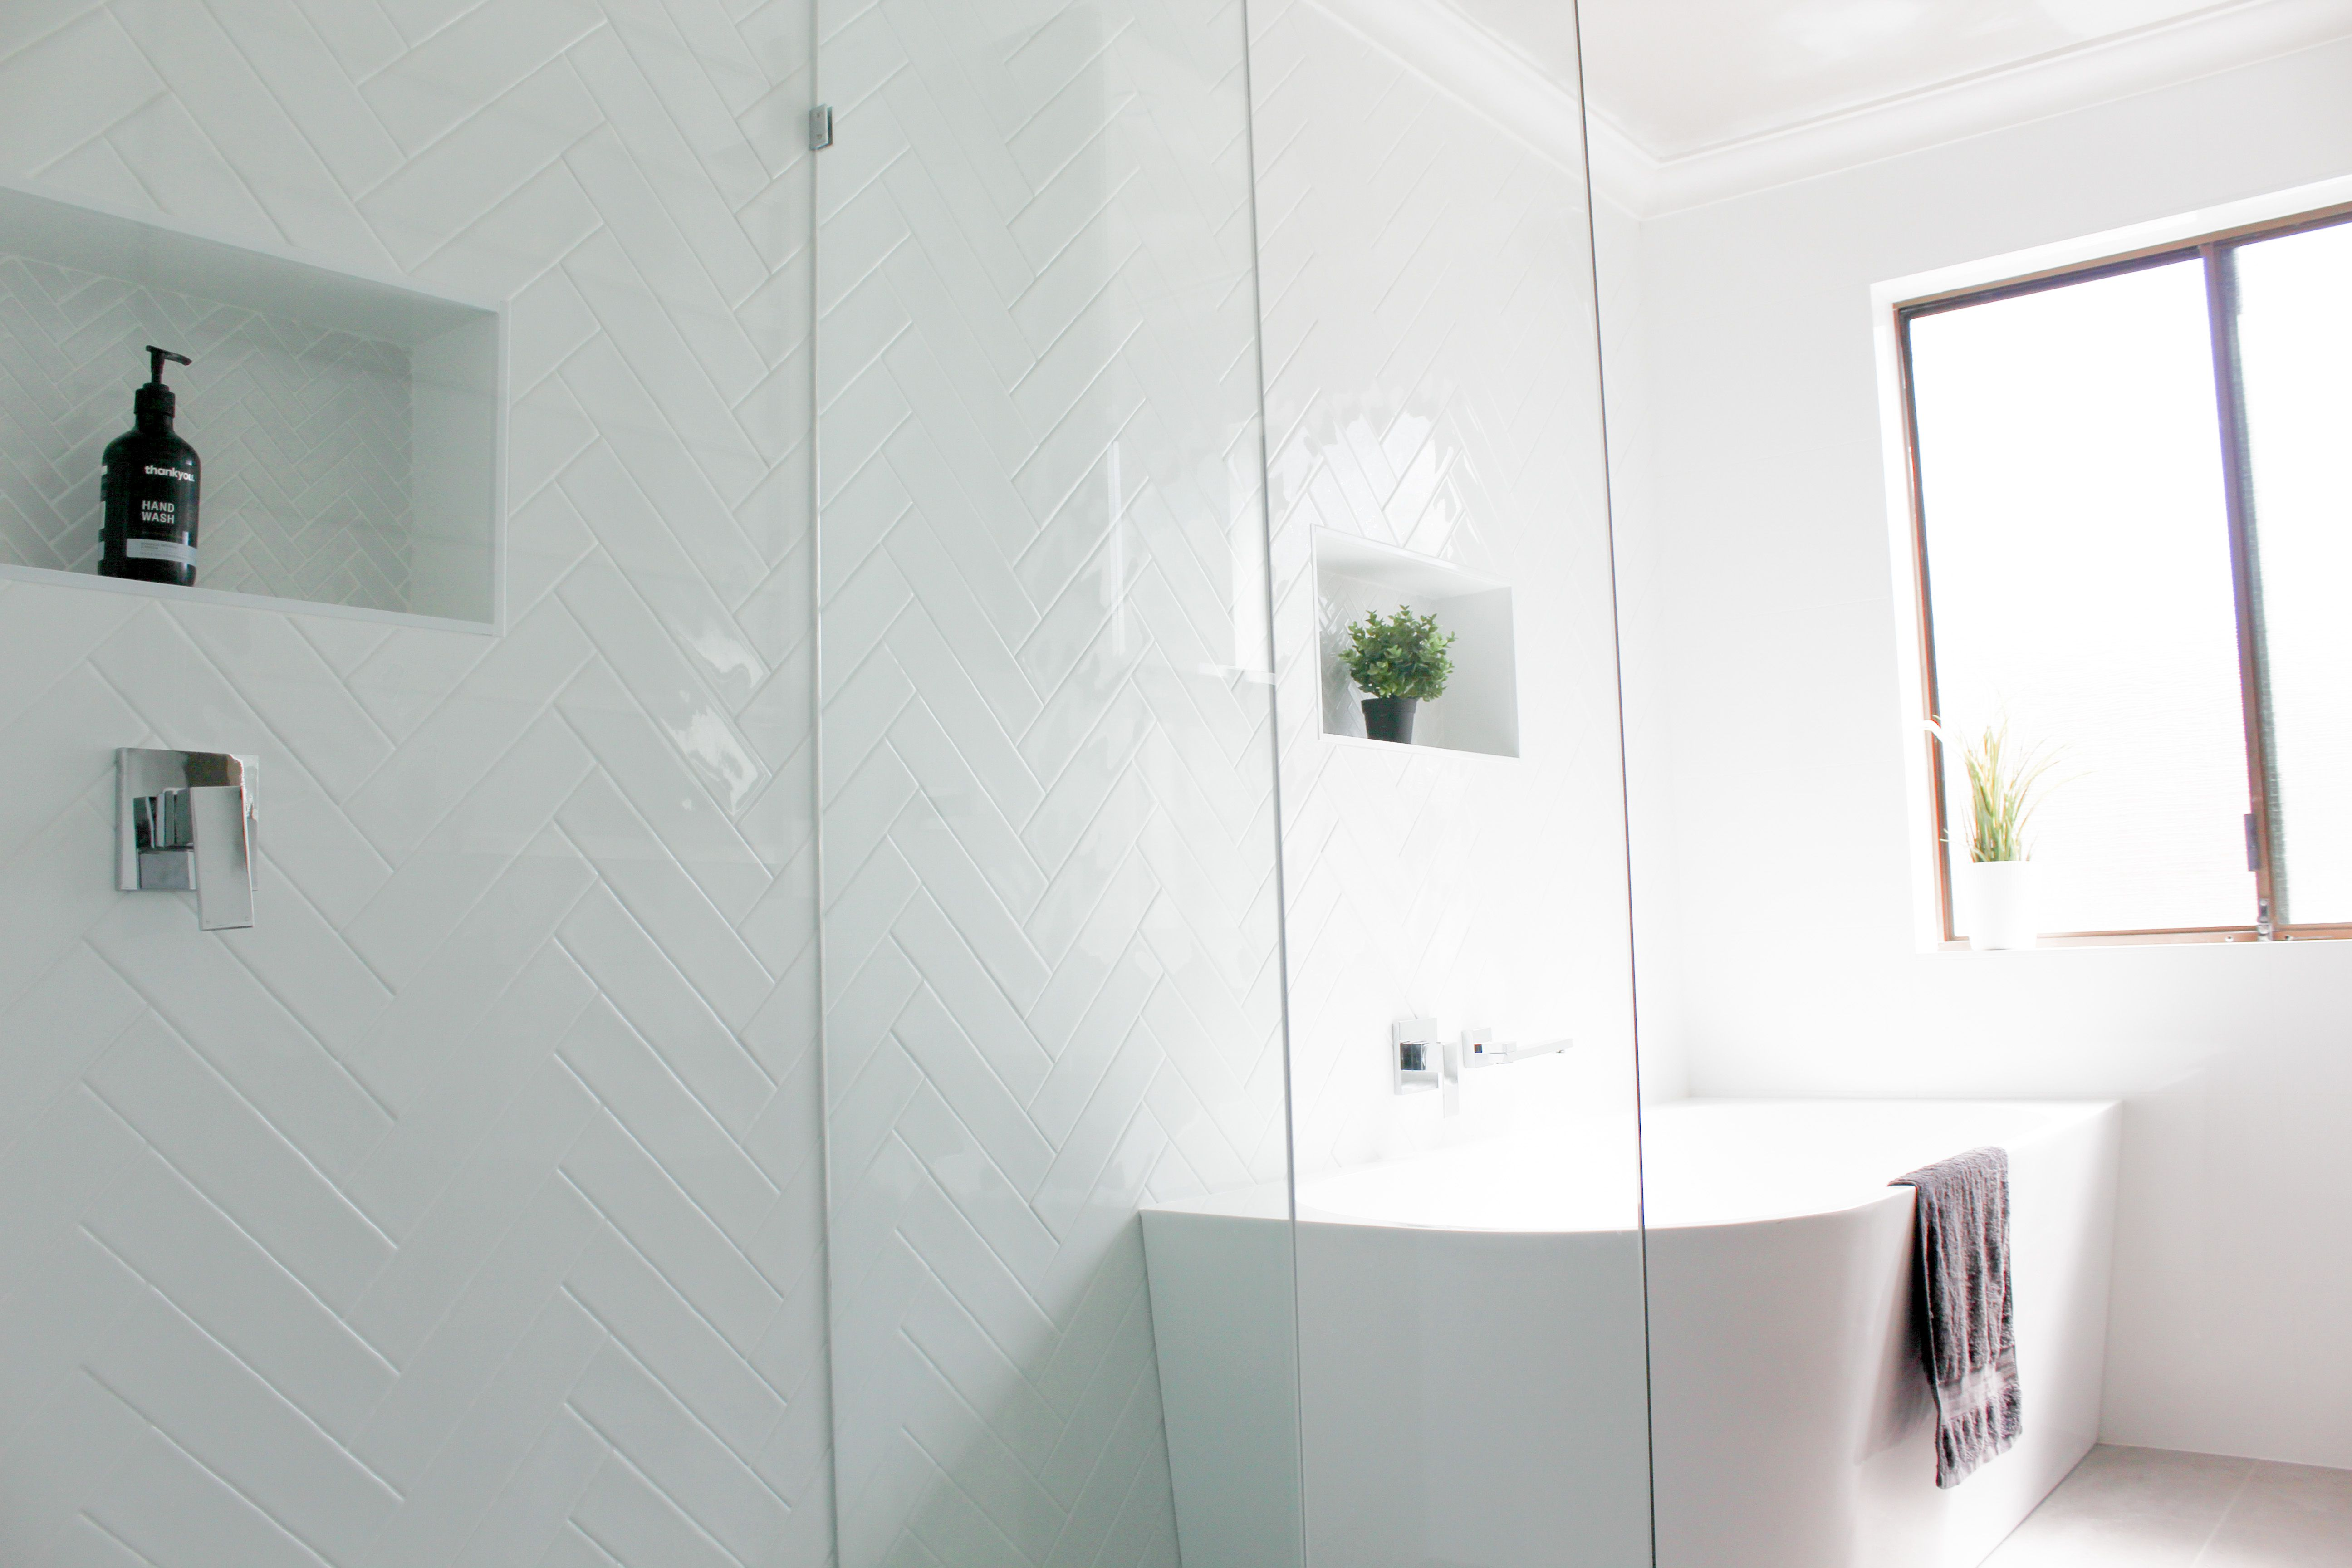 Freestanding Bath Subway Tiles Herrinbone Tiles Back To Wall